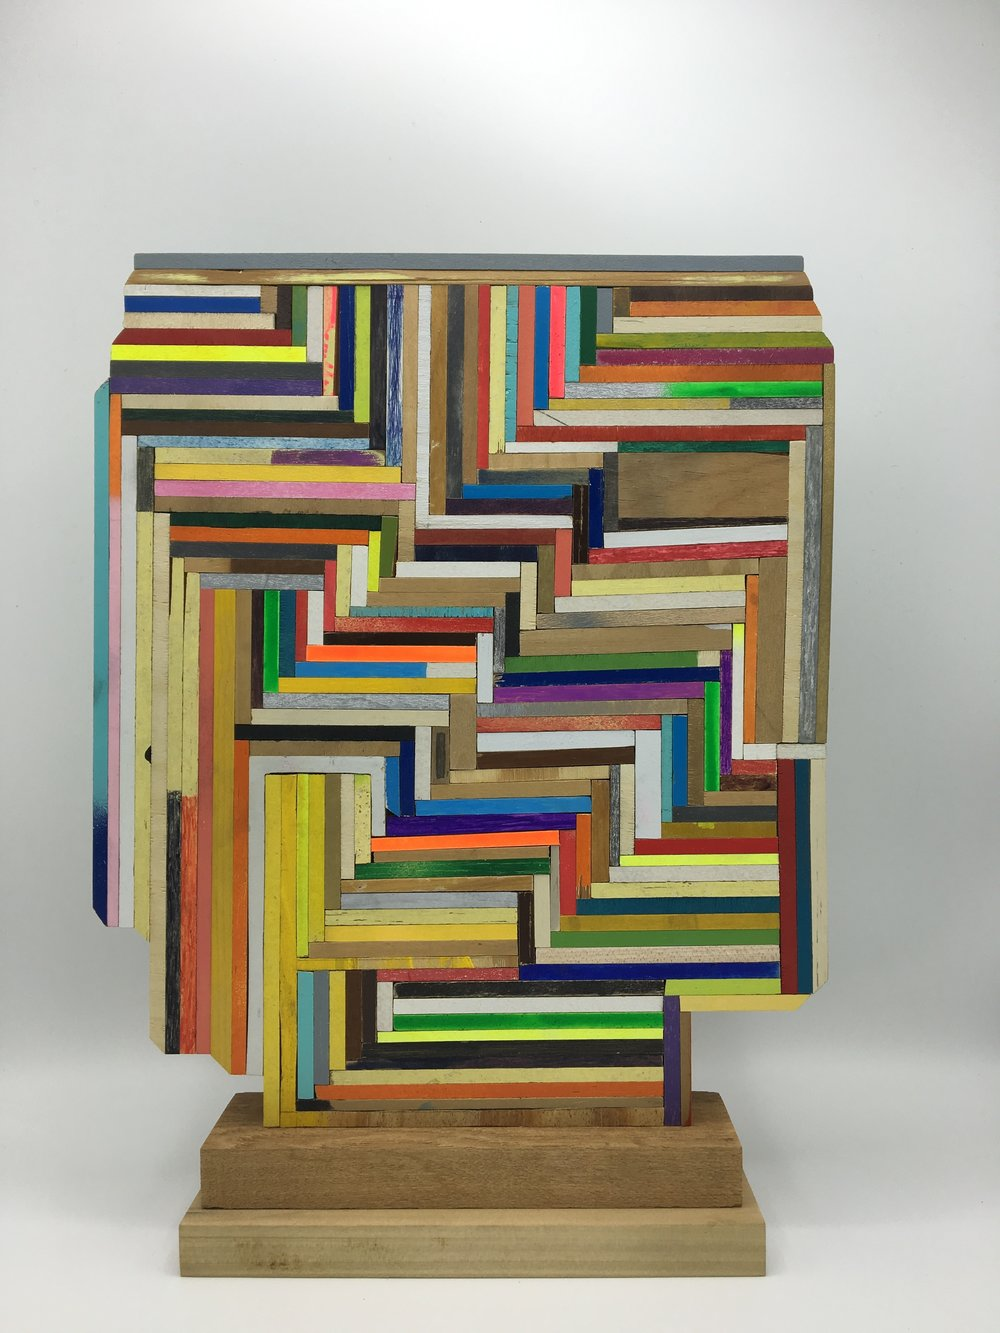 Monument , 2016  [private collection Madison, Wisconsin]  Wood, Paint, Colored Pencil, Glue     14 x 11 x 3 in. SOLD